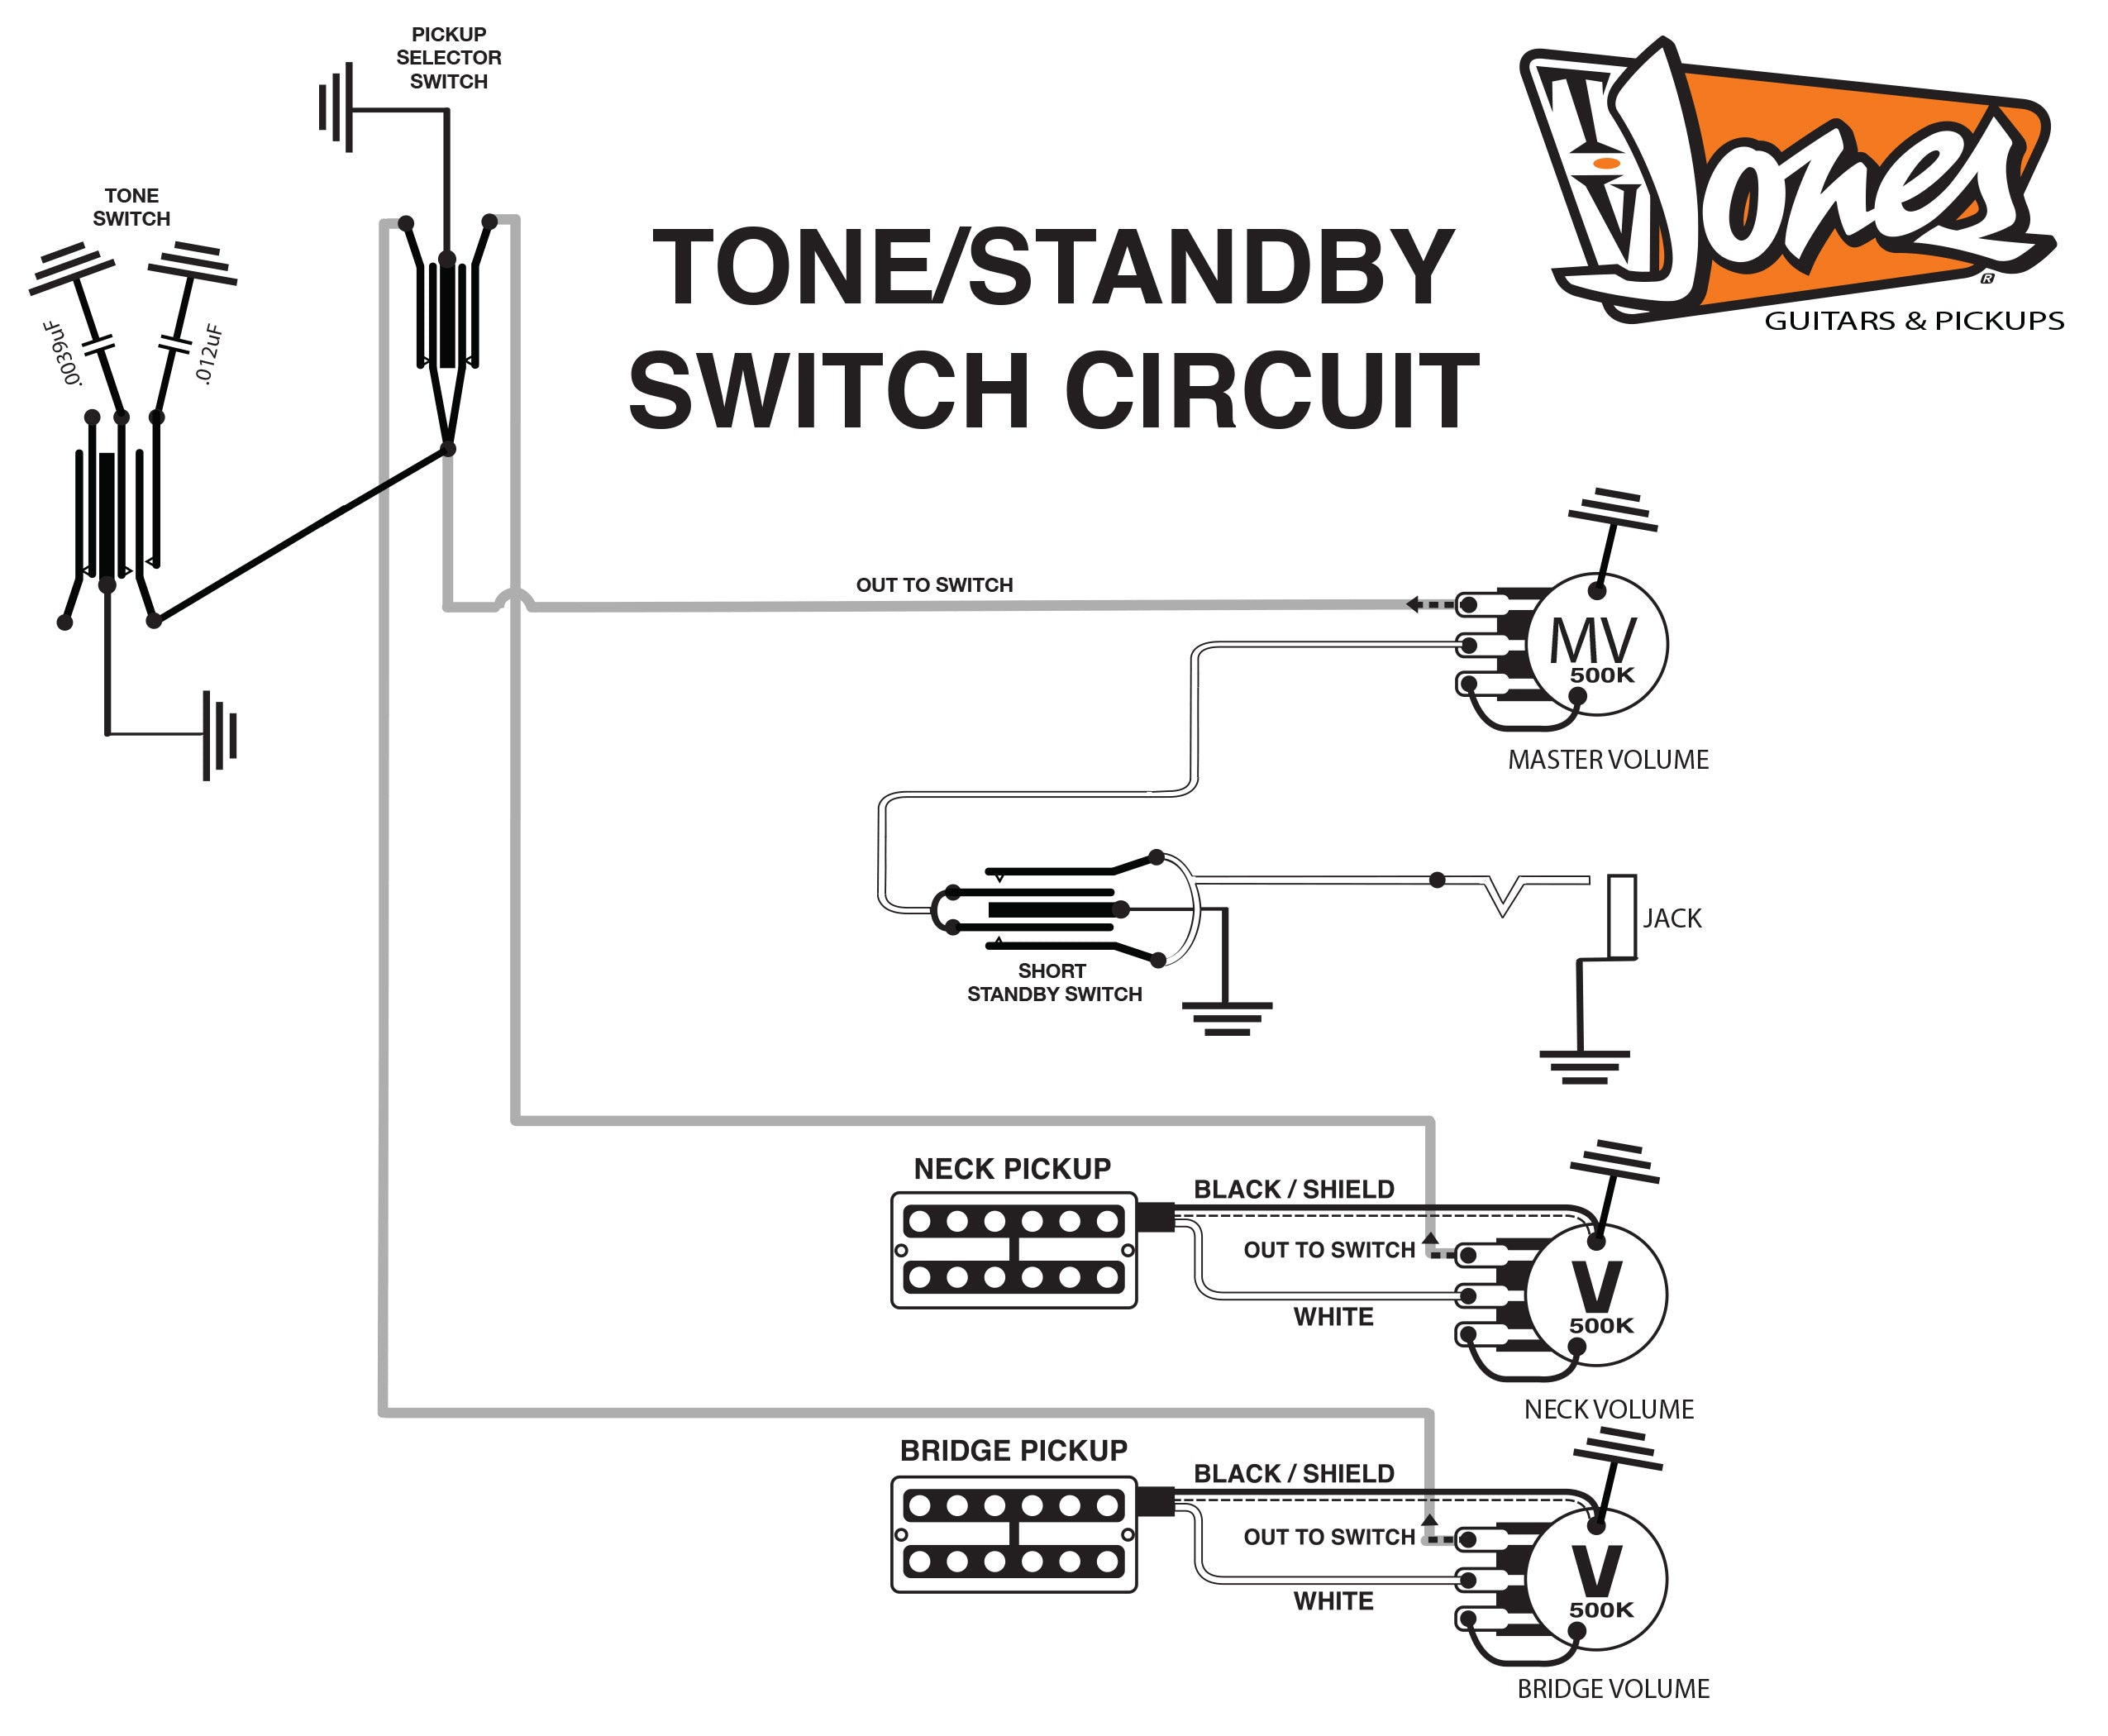 tv jones wiring diagram schematics wiring diagrams u2022 rh hokispokisrecords com tv jones telecaster wiring diagram